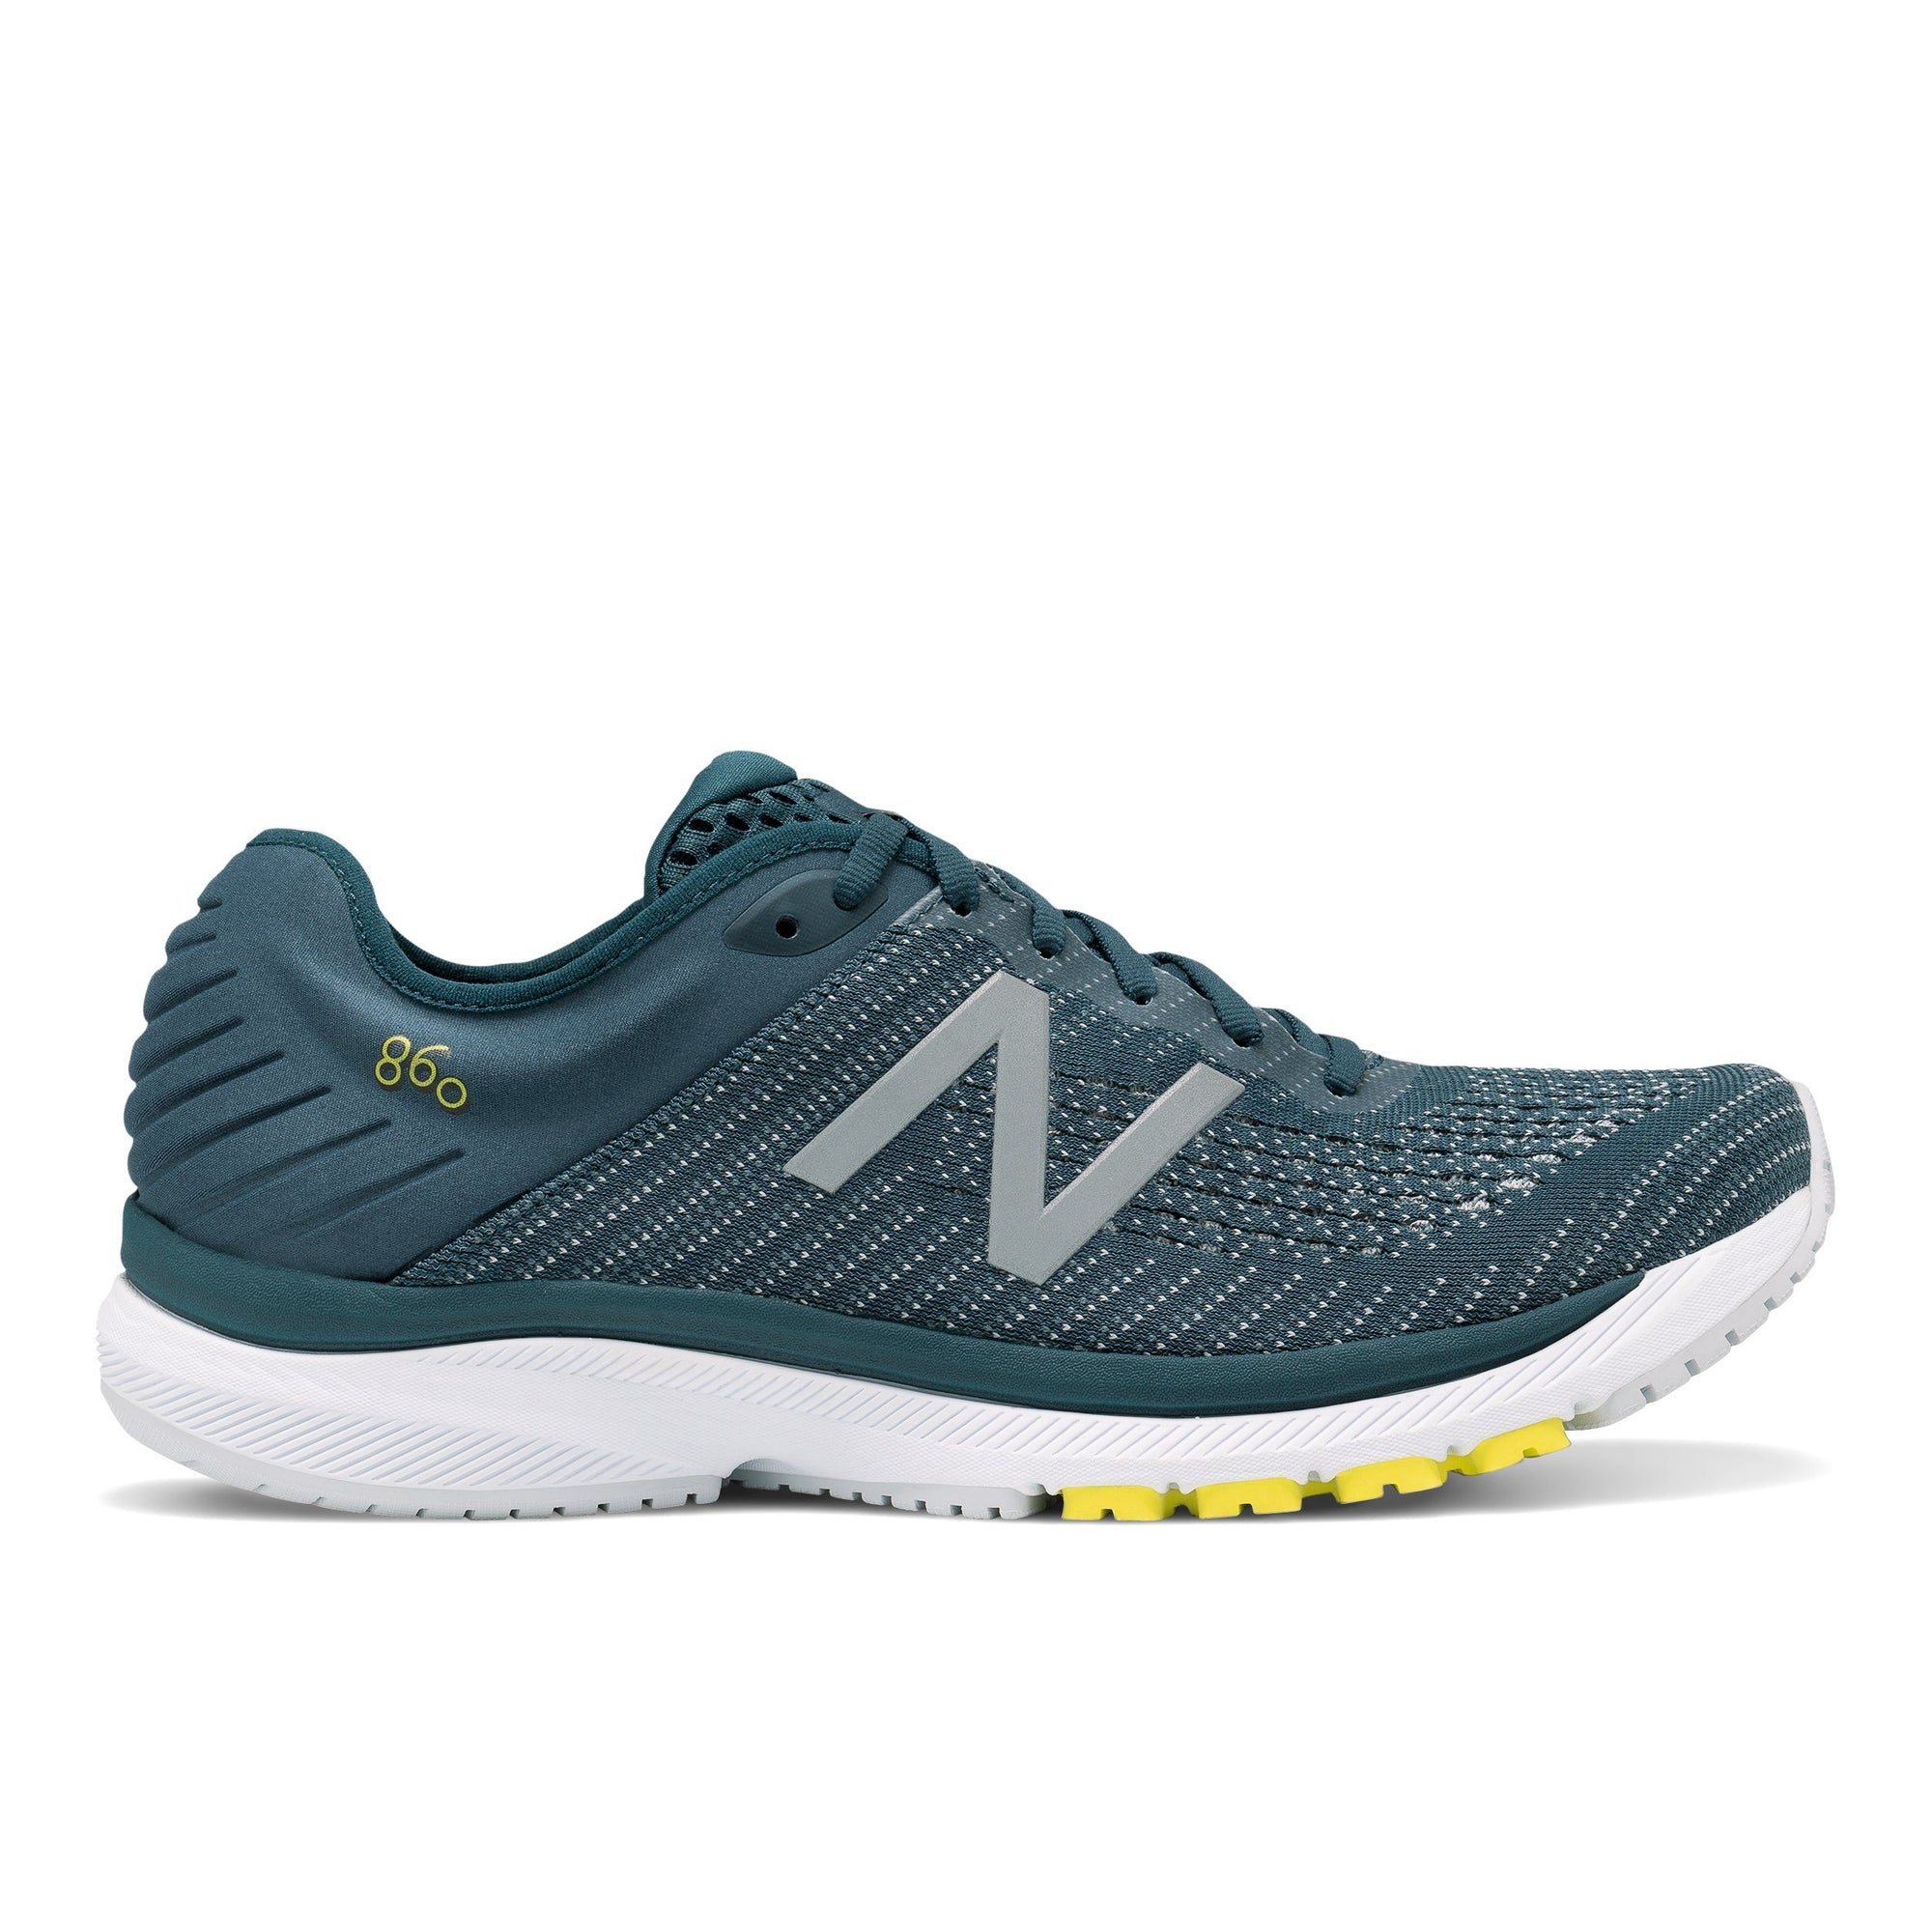 New Balance Mens 860v10 - Petrol SP-Footwear-Mens New Balance